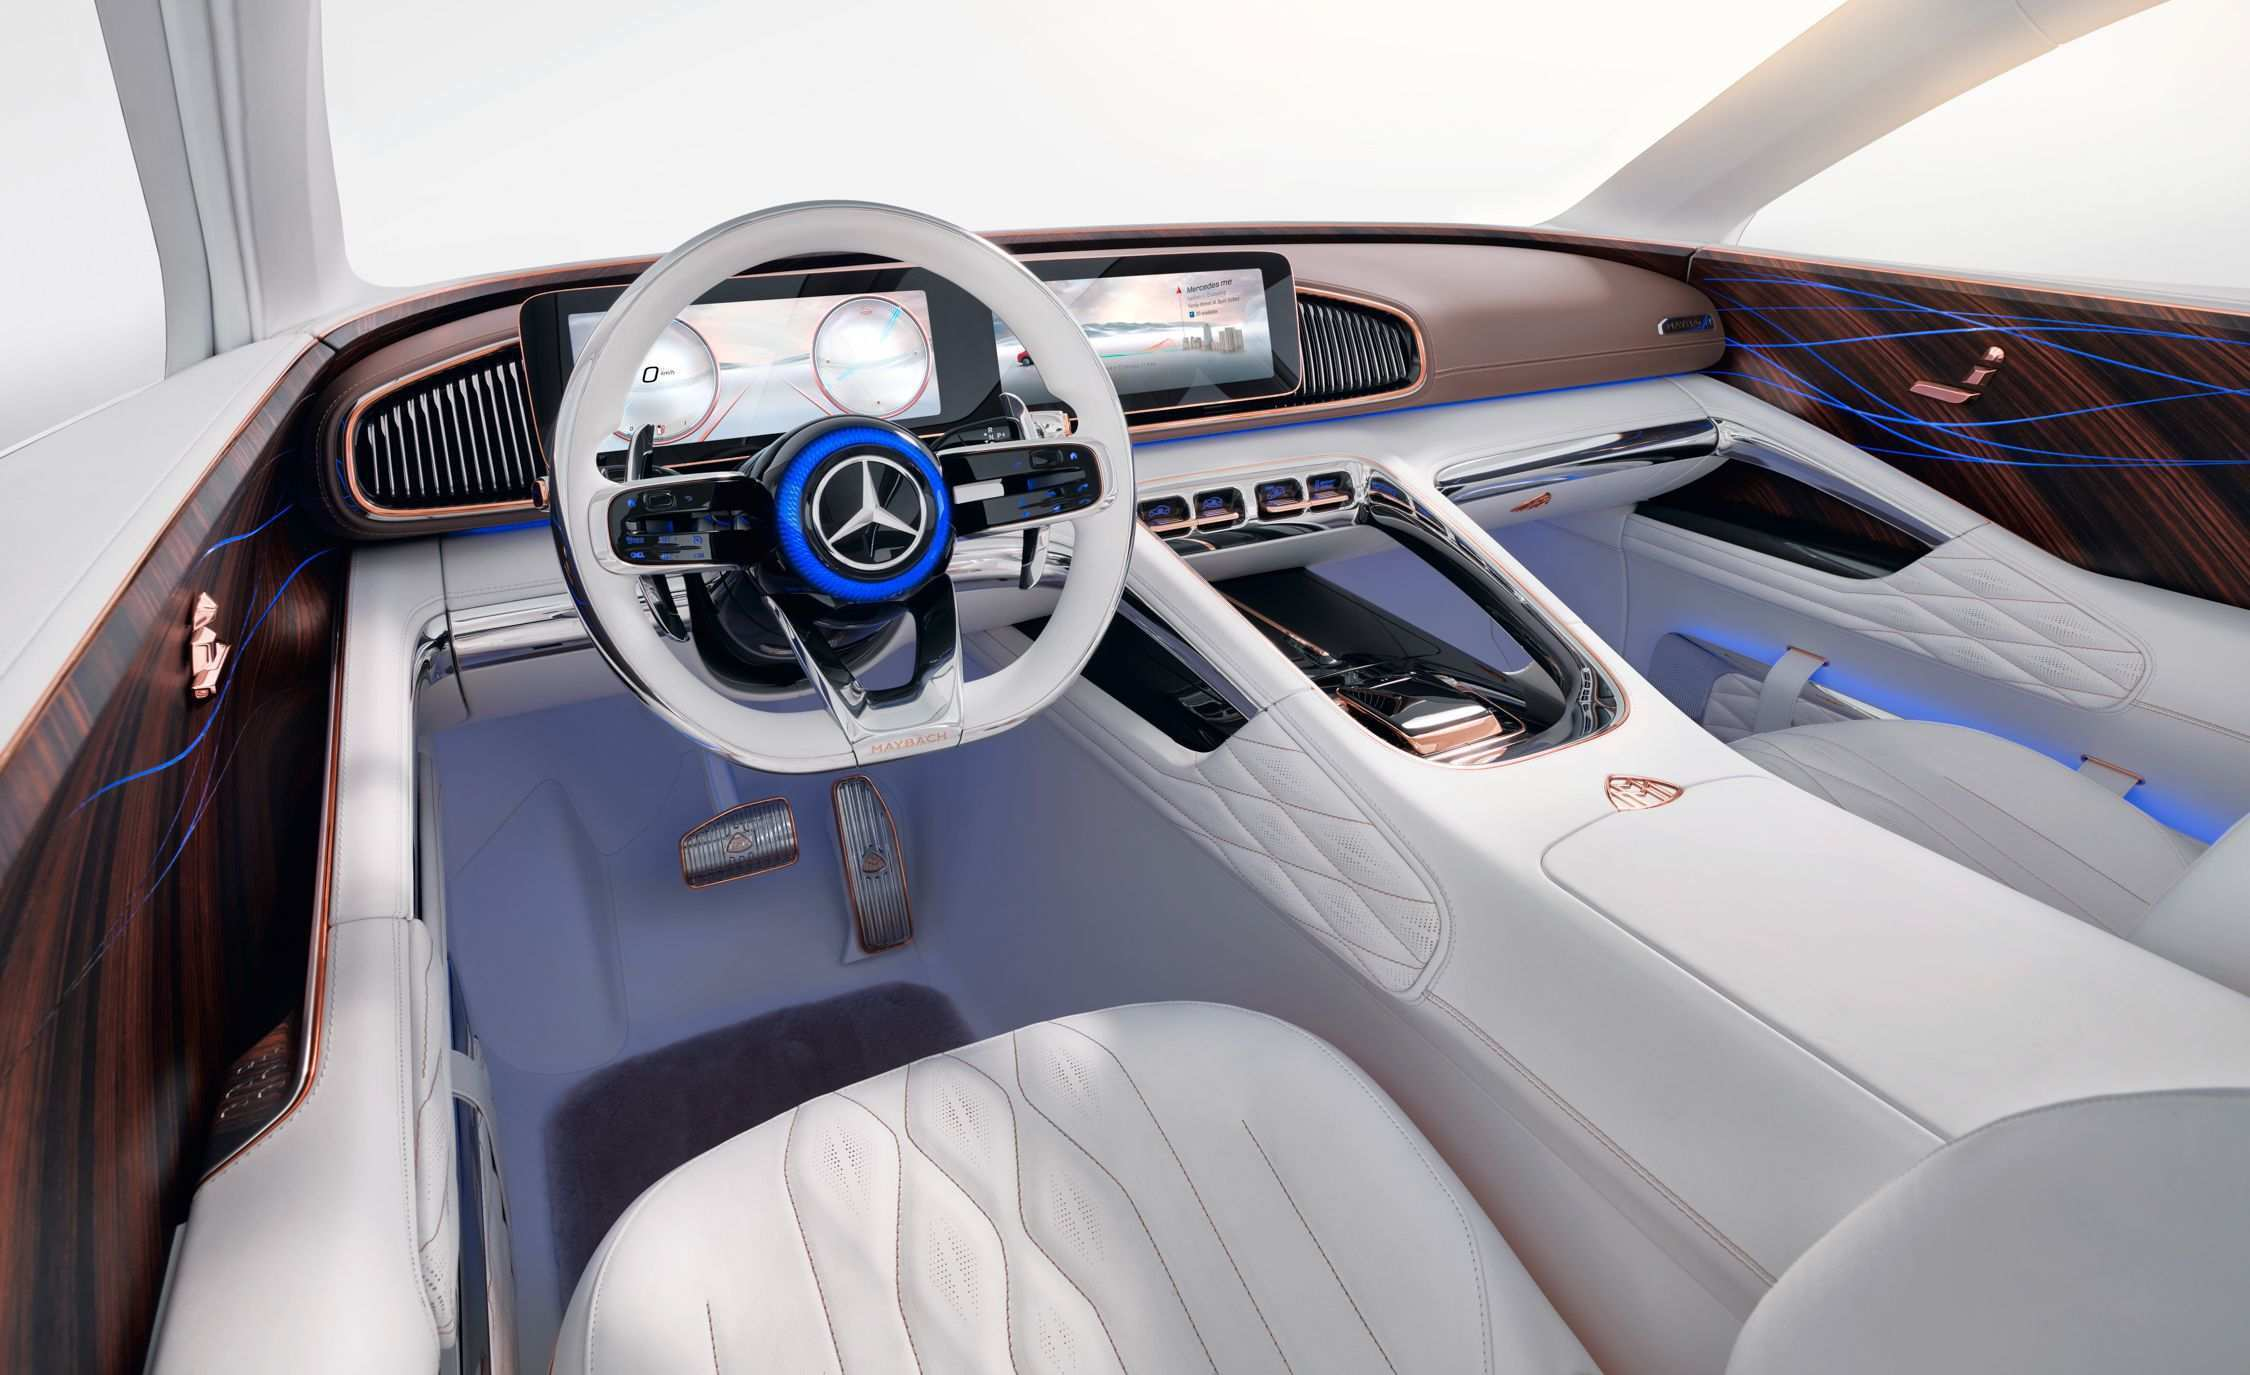 67 Gallery of 2020 Mercedes S Class Interior with 2020 Mercedes S Class